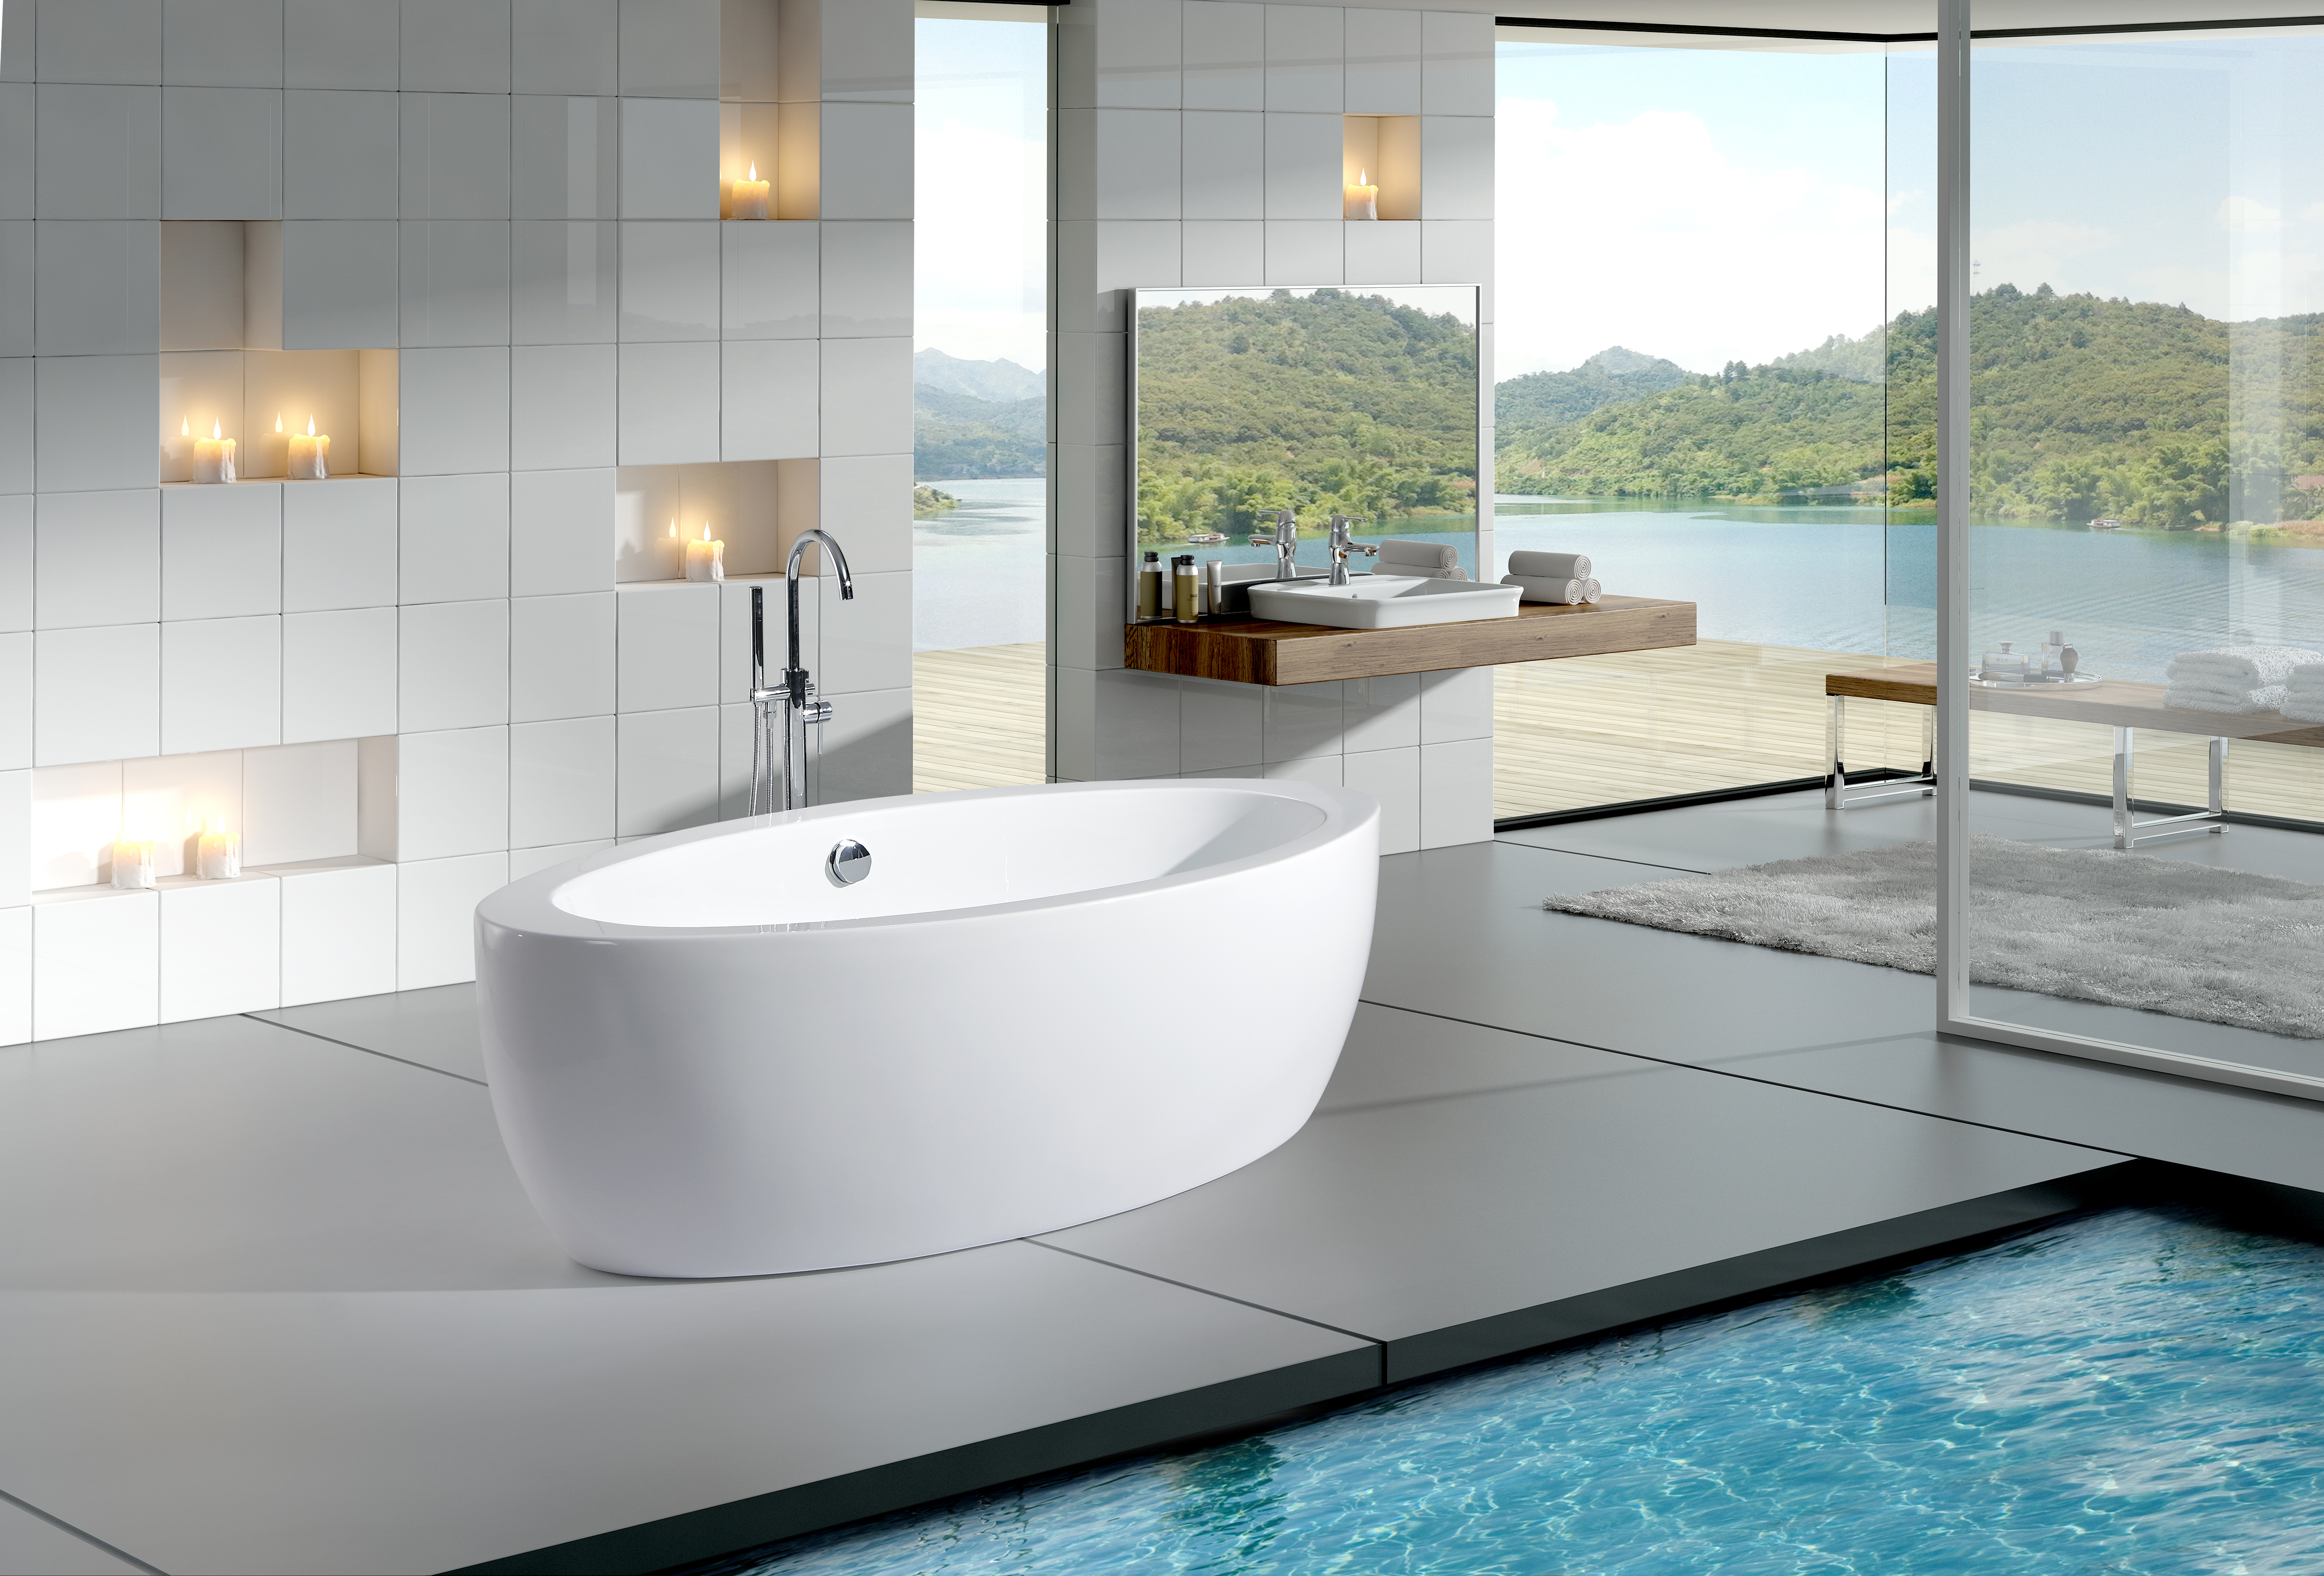 bathtubs get good treece it to bathroom pin with and tub more modern acrylic nice can a jets option clawfoot bathtub freestanding for tubs